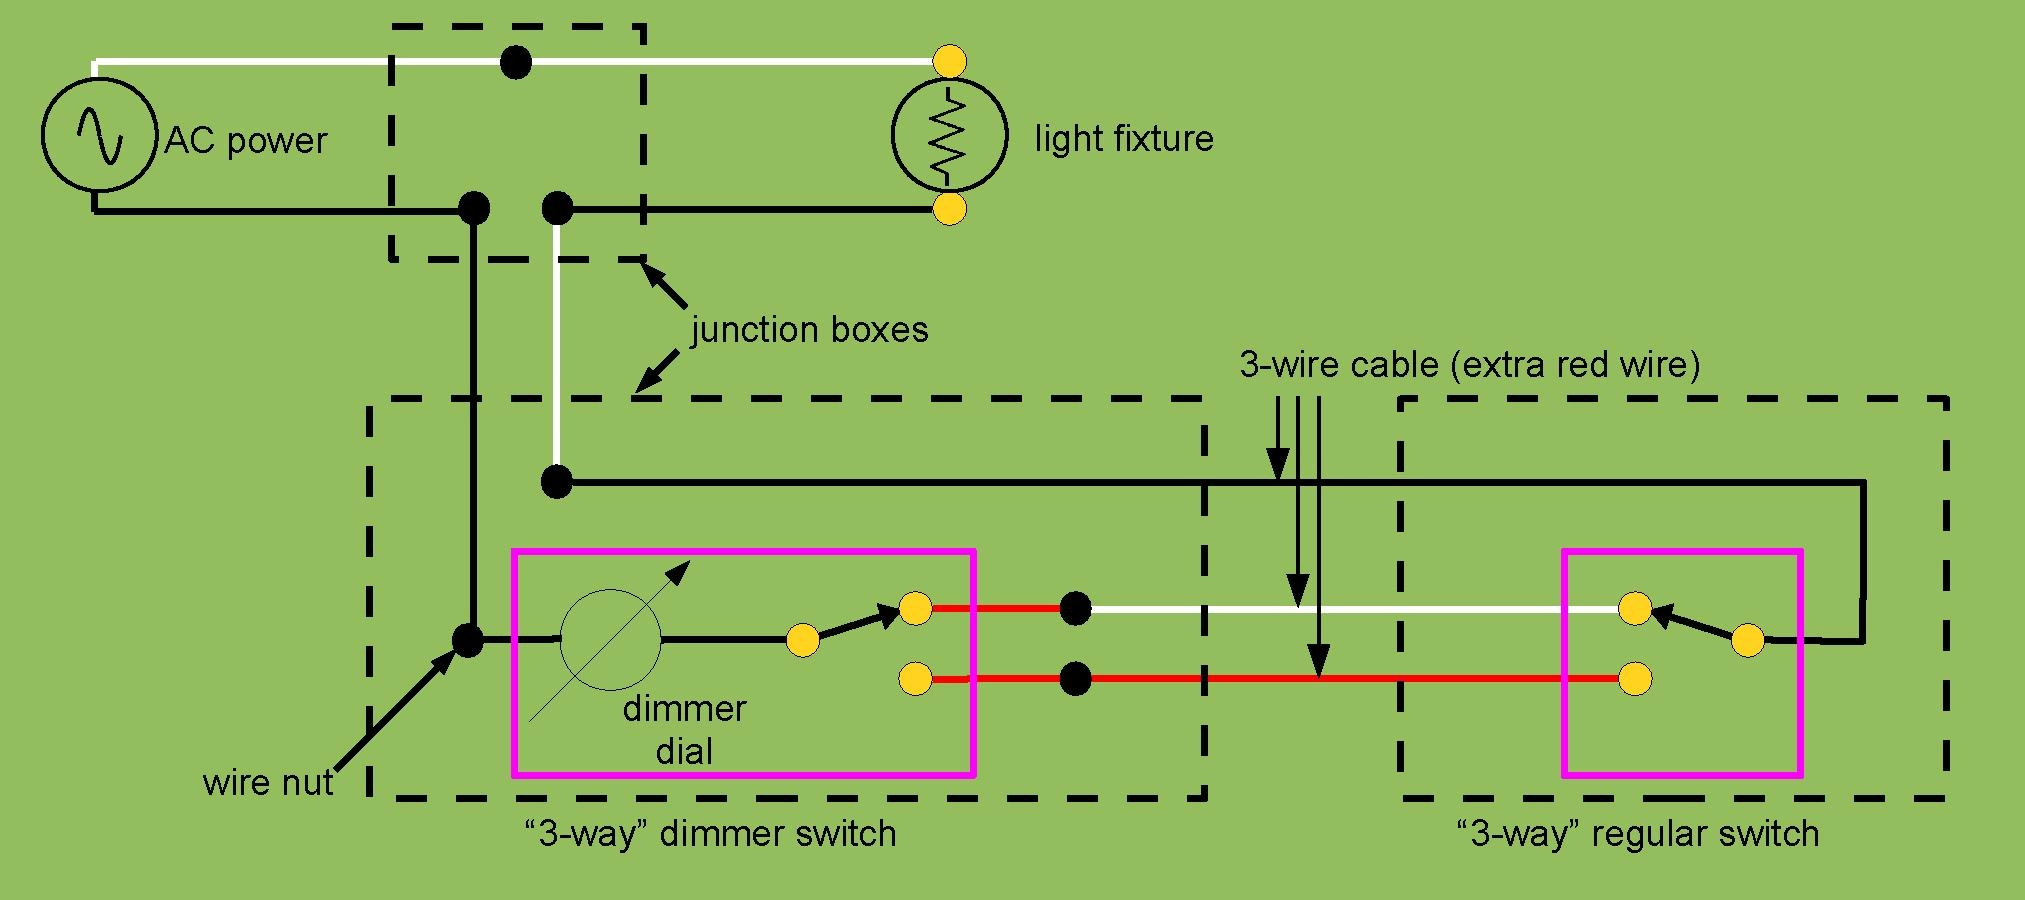 Jackson Dishwasher Solenoid Wiring Diagram Pond 3 Way Valve Wall Switch Auto Electrical On Construction Supply Chain